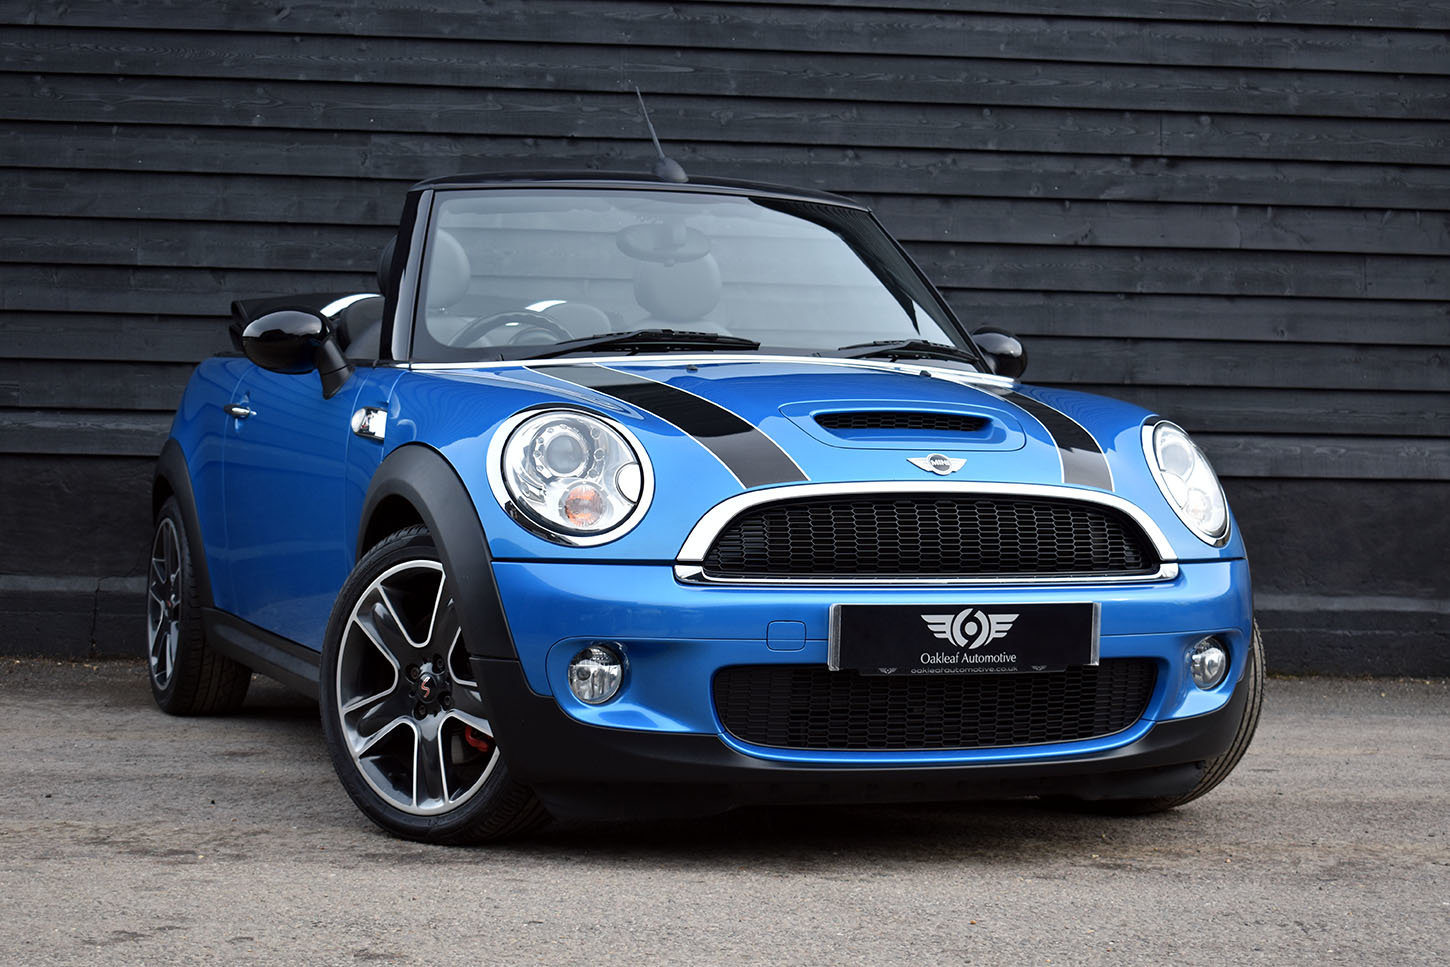 2010 MINI 1.6 Cooper S Chili Convertible Great Spec+RAC Approved For Sale (picture 1 of 12)